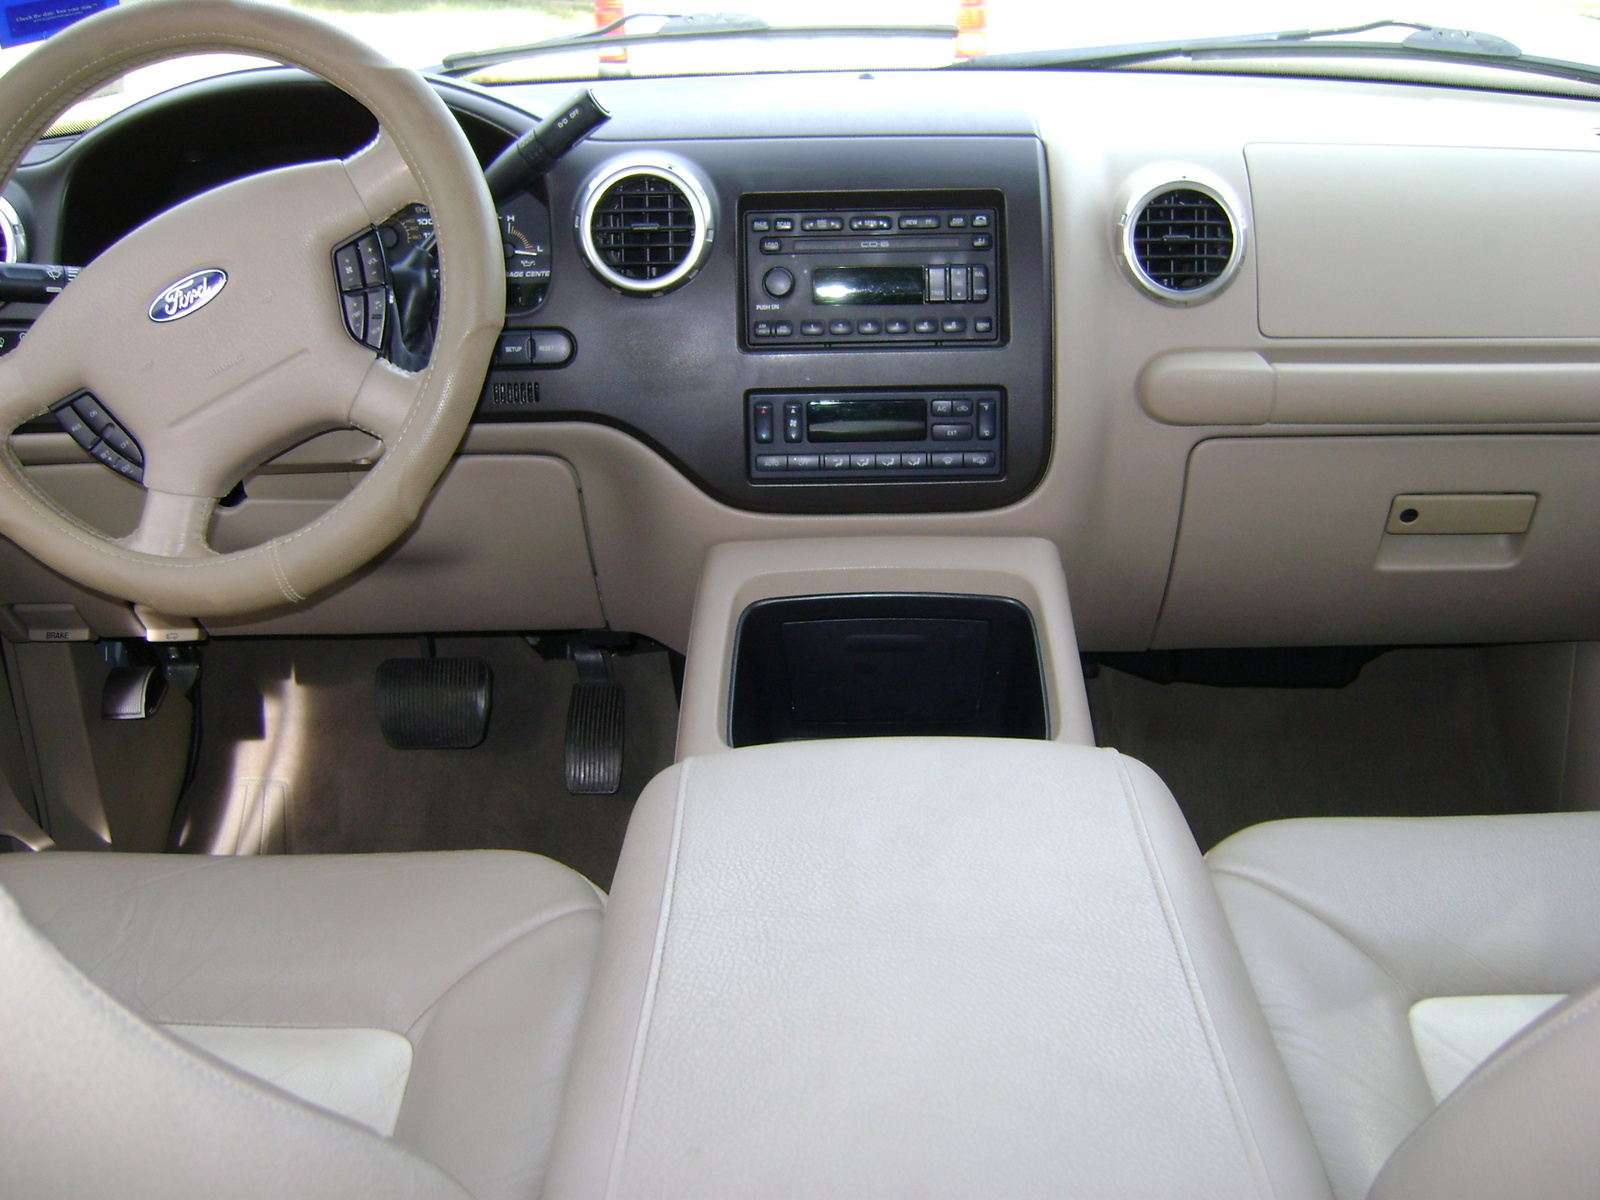 2003 Ford Expedition Interior Pictures Cargurus